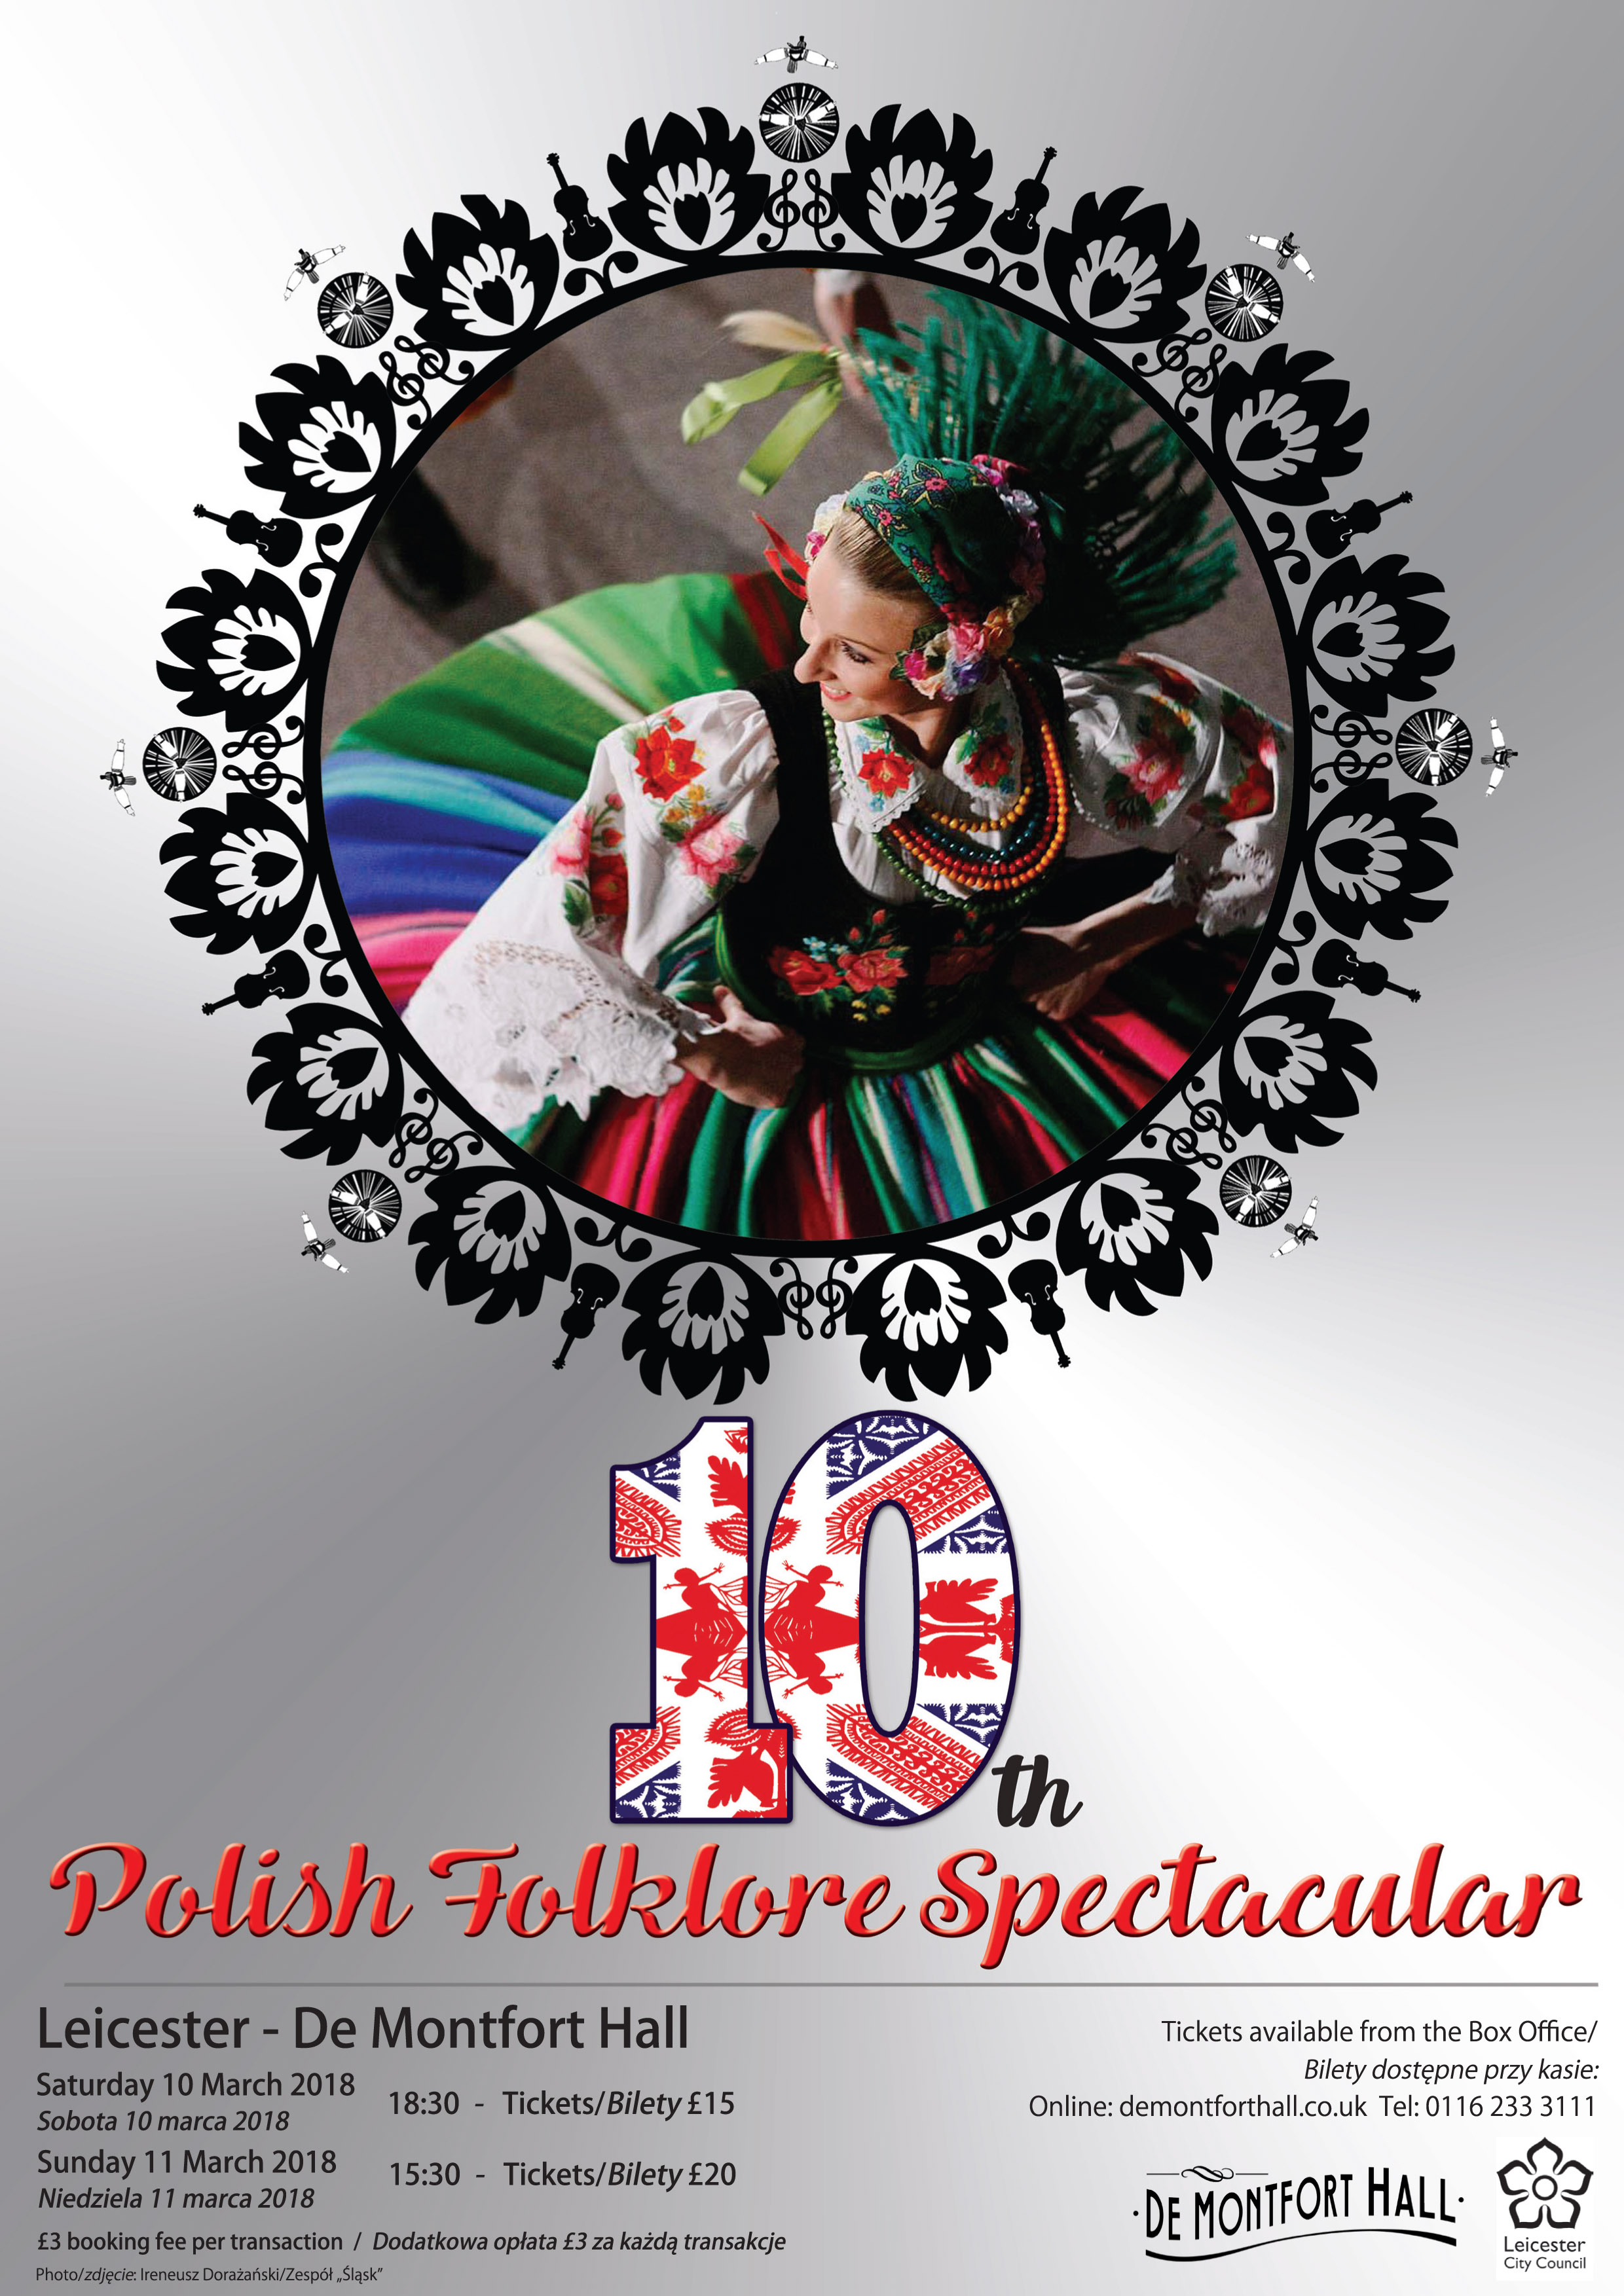 10th Polish Folklore Spectacular at De Montford Hall in Leicester 10-11 March 2018